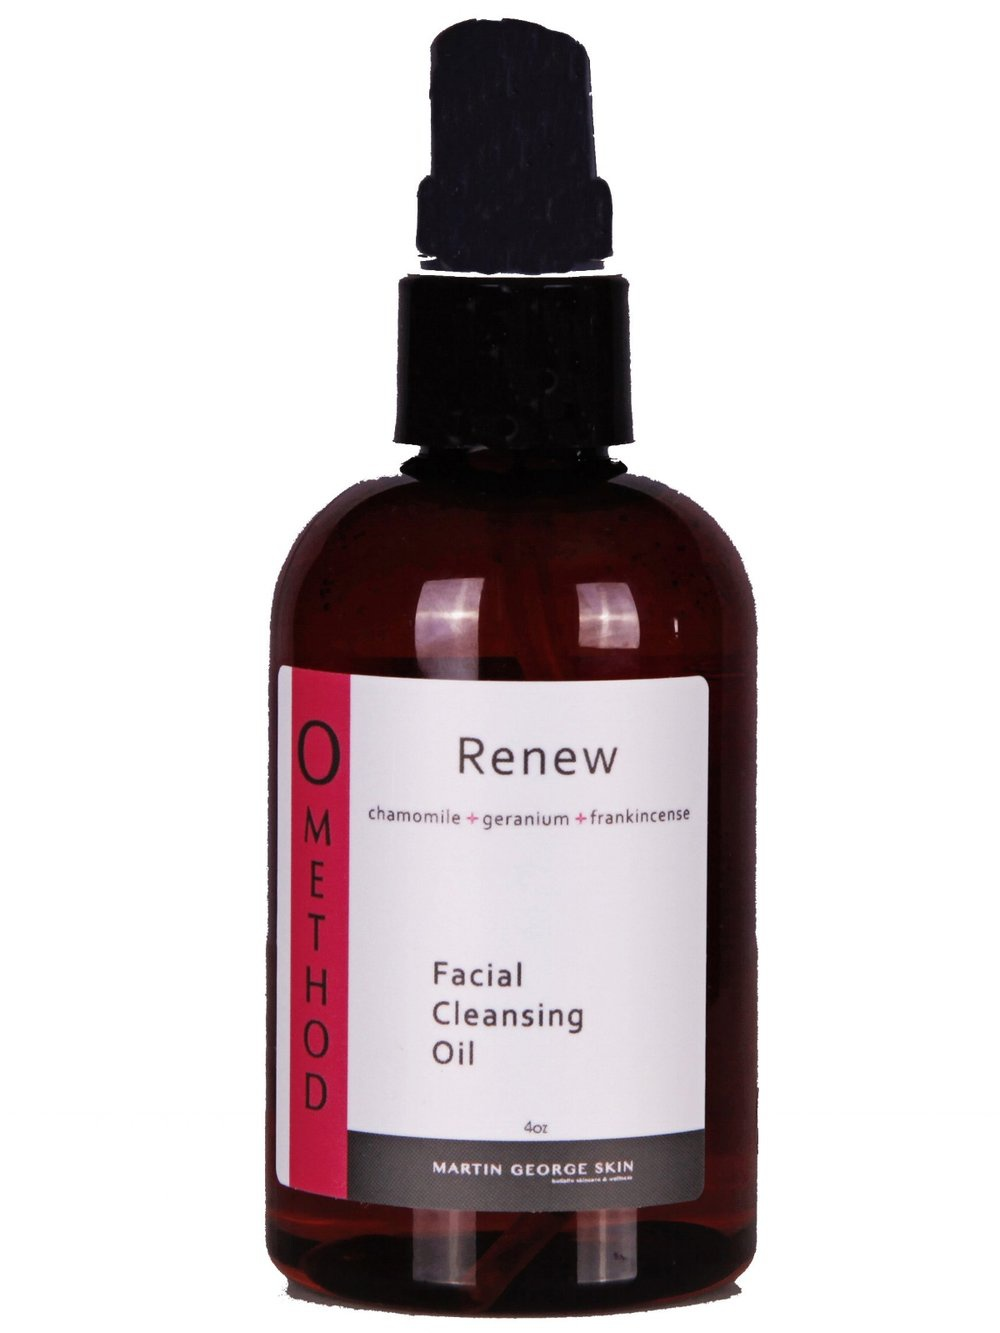 Martin George Skin Renew Facial Cleansing Oil